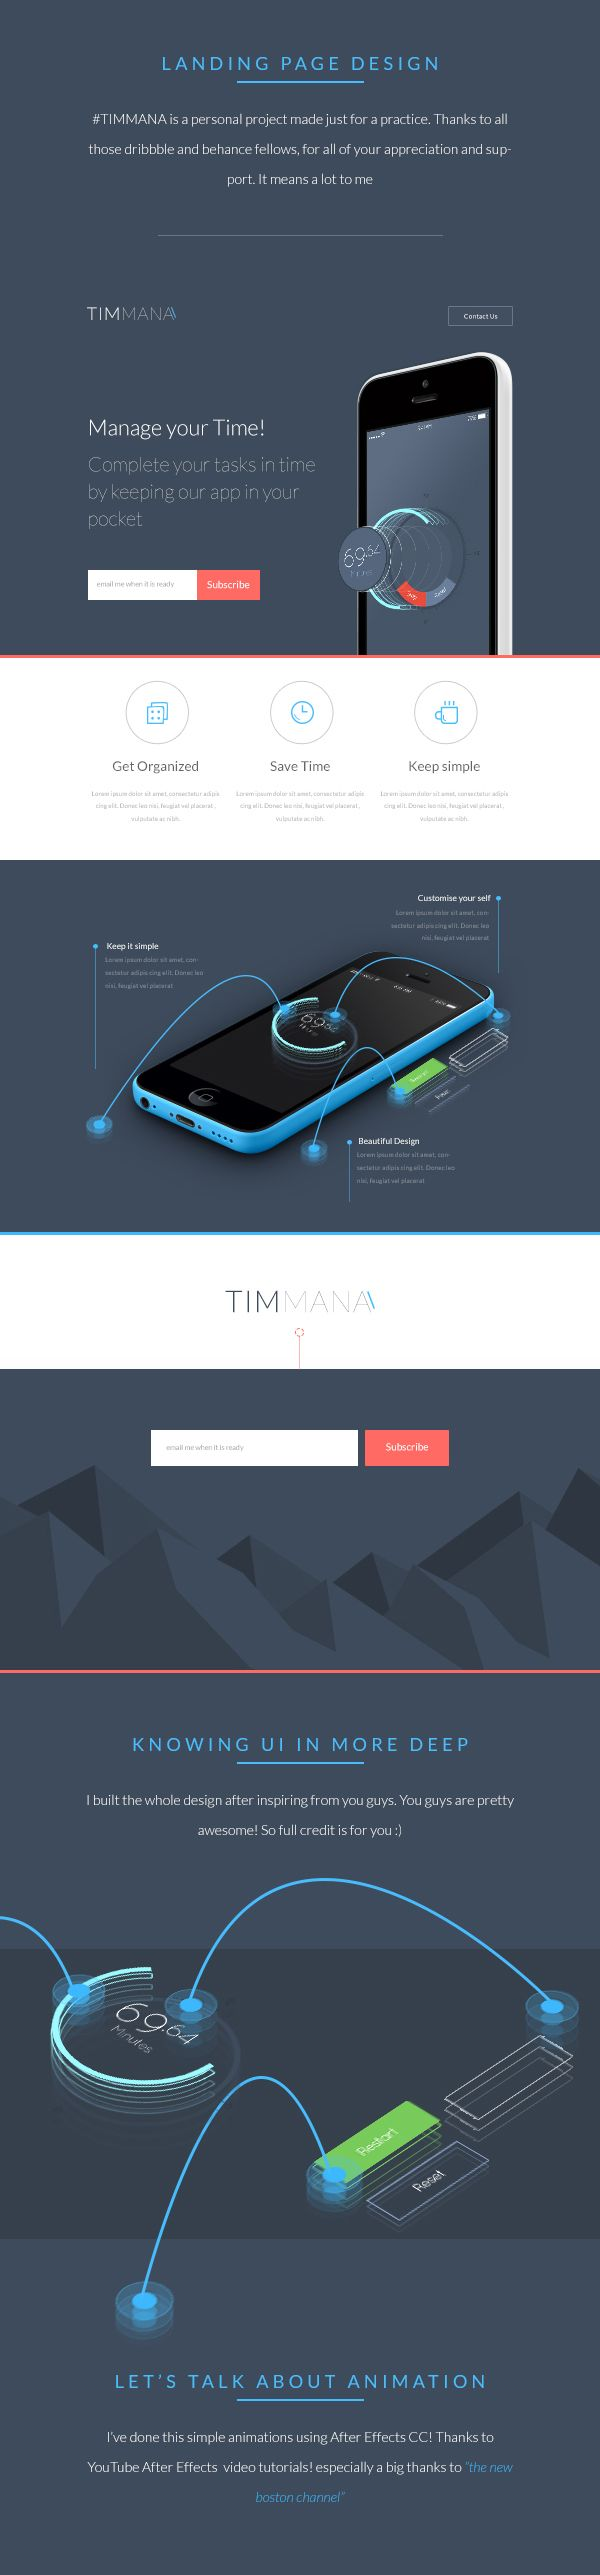 TIMMANA - App Landing Page